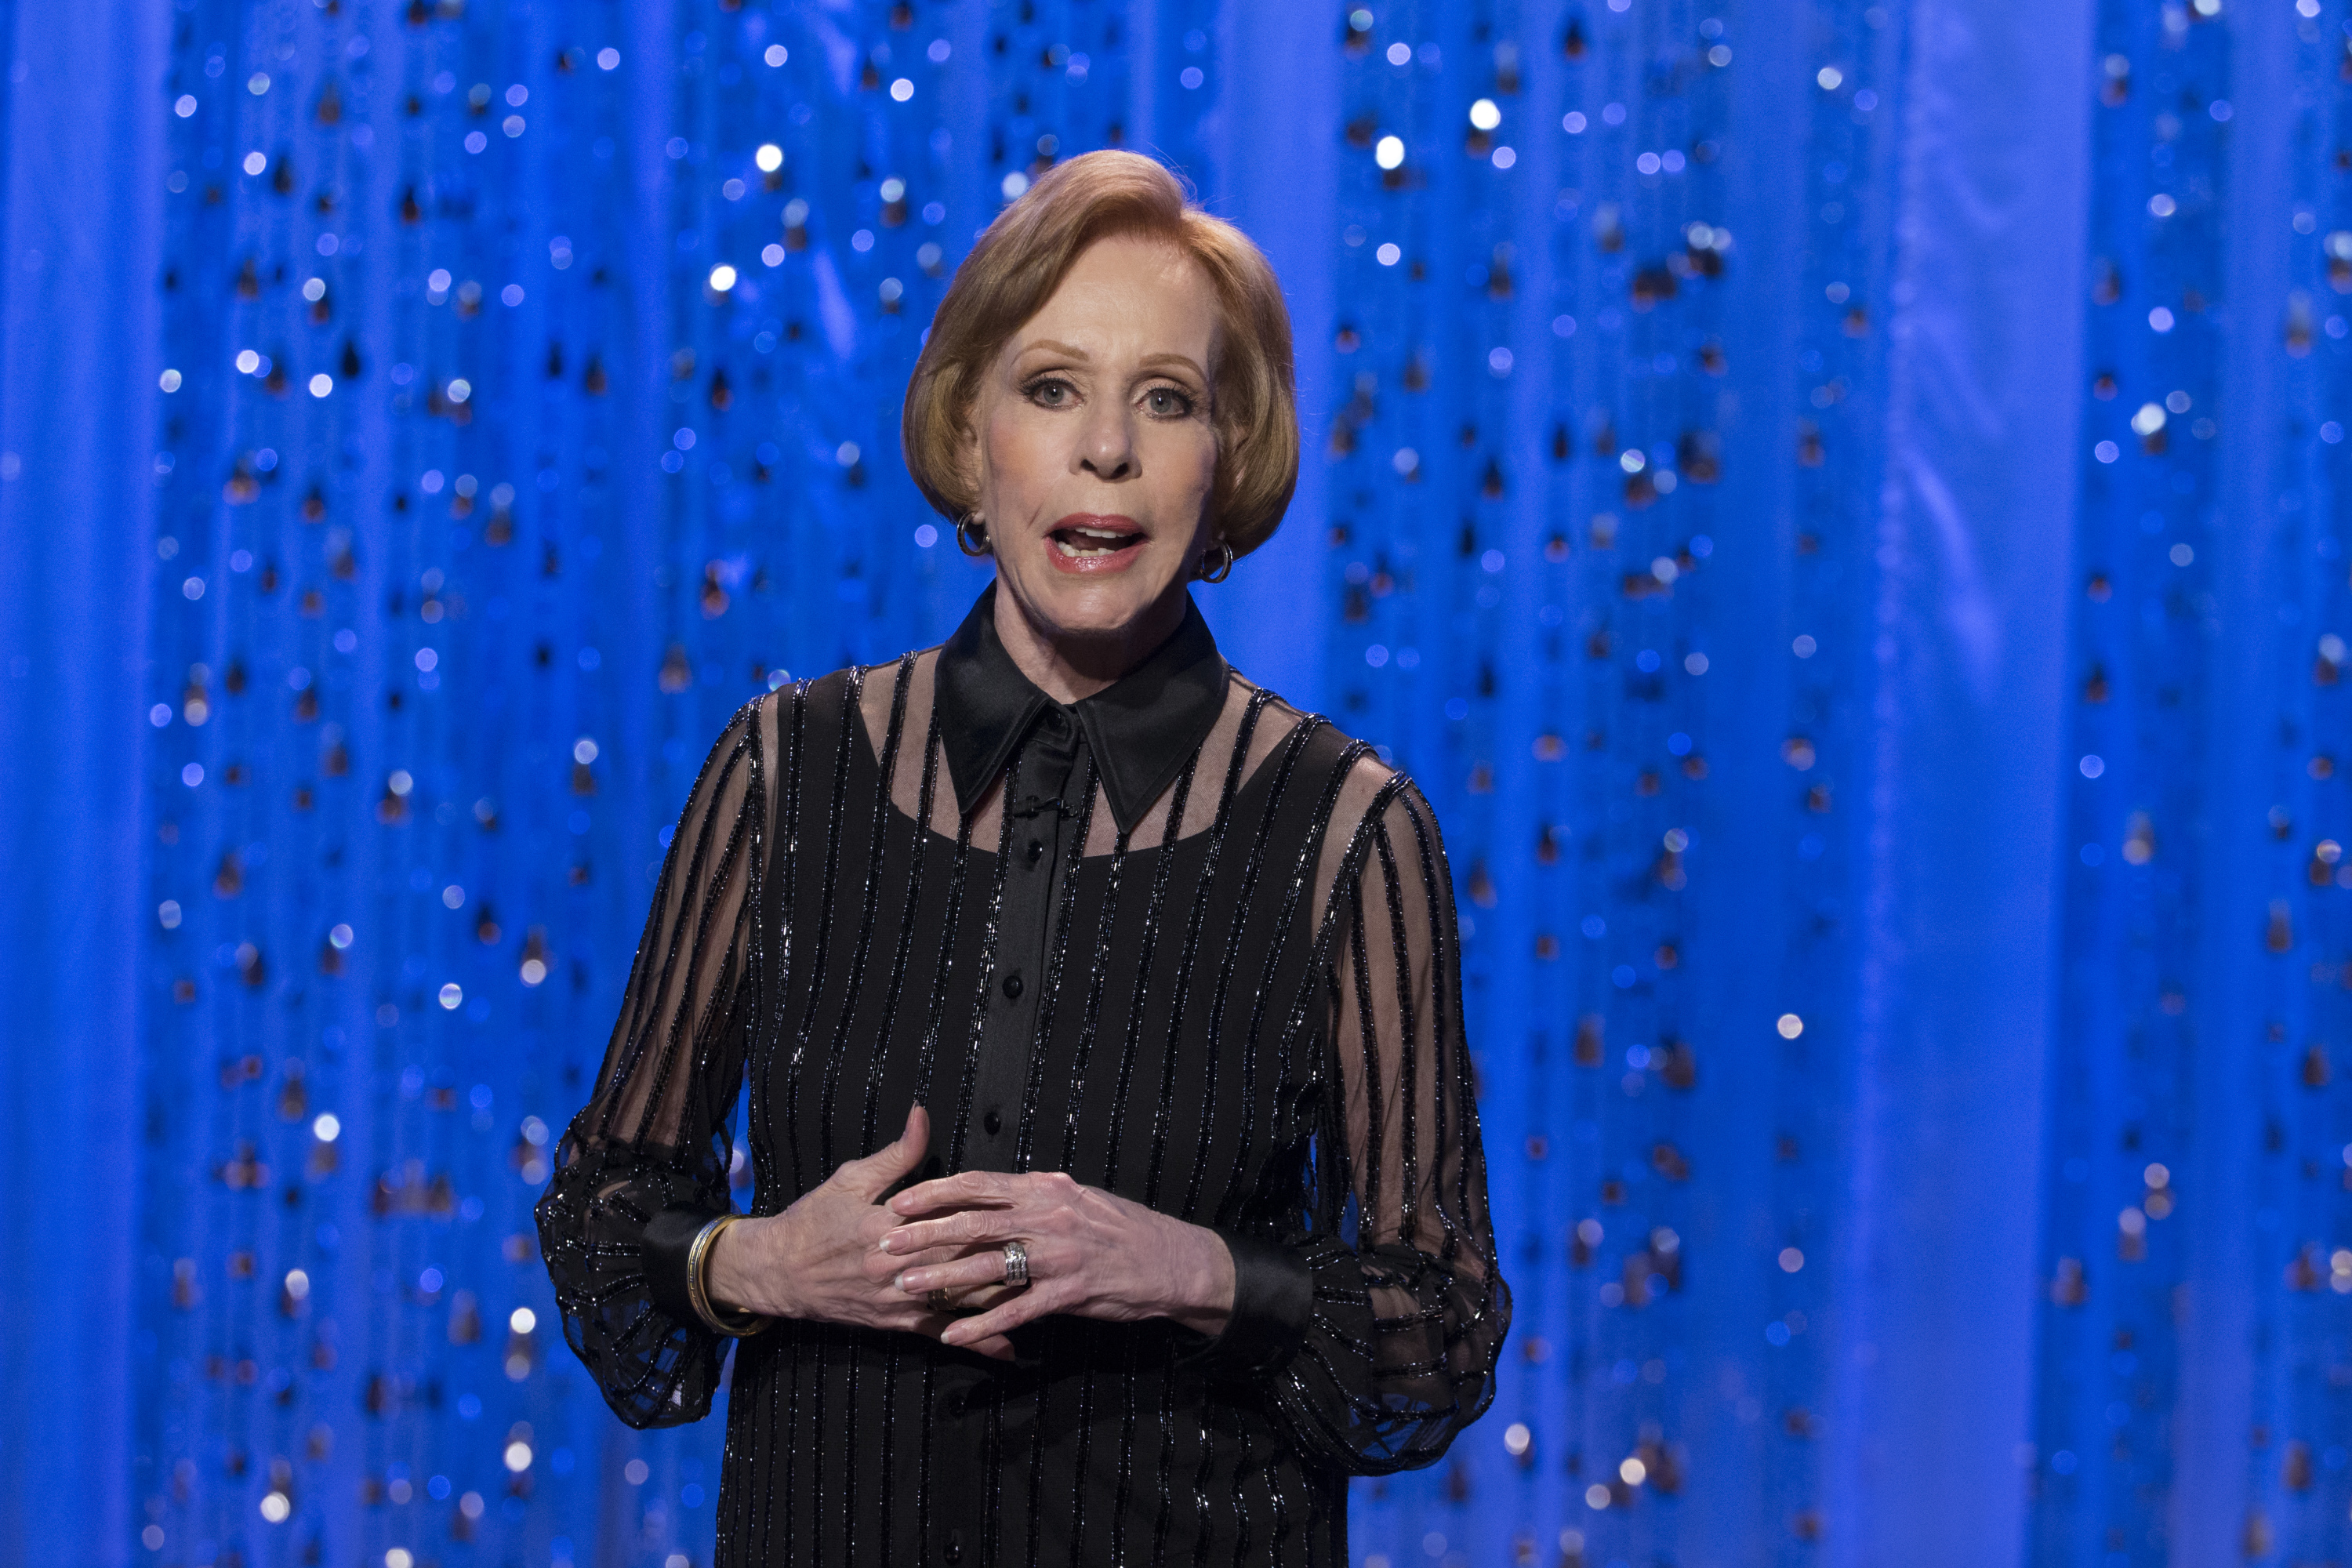 Cached The carol burnett show fashion designer